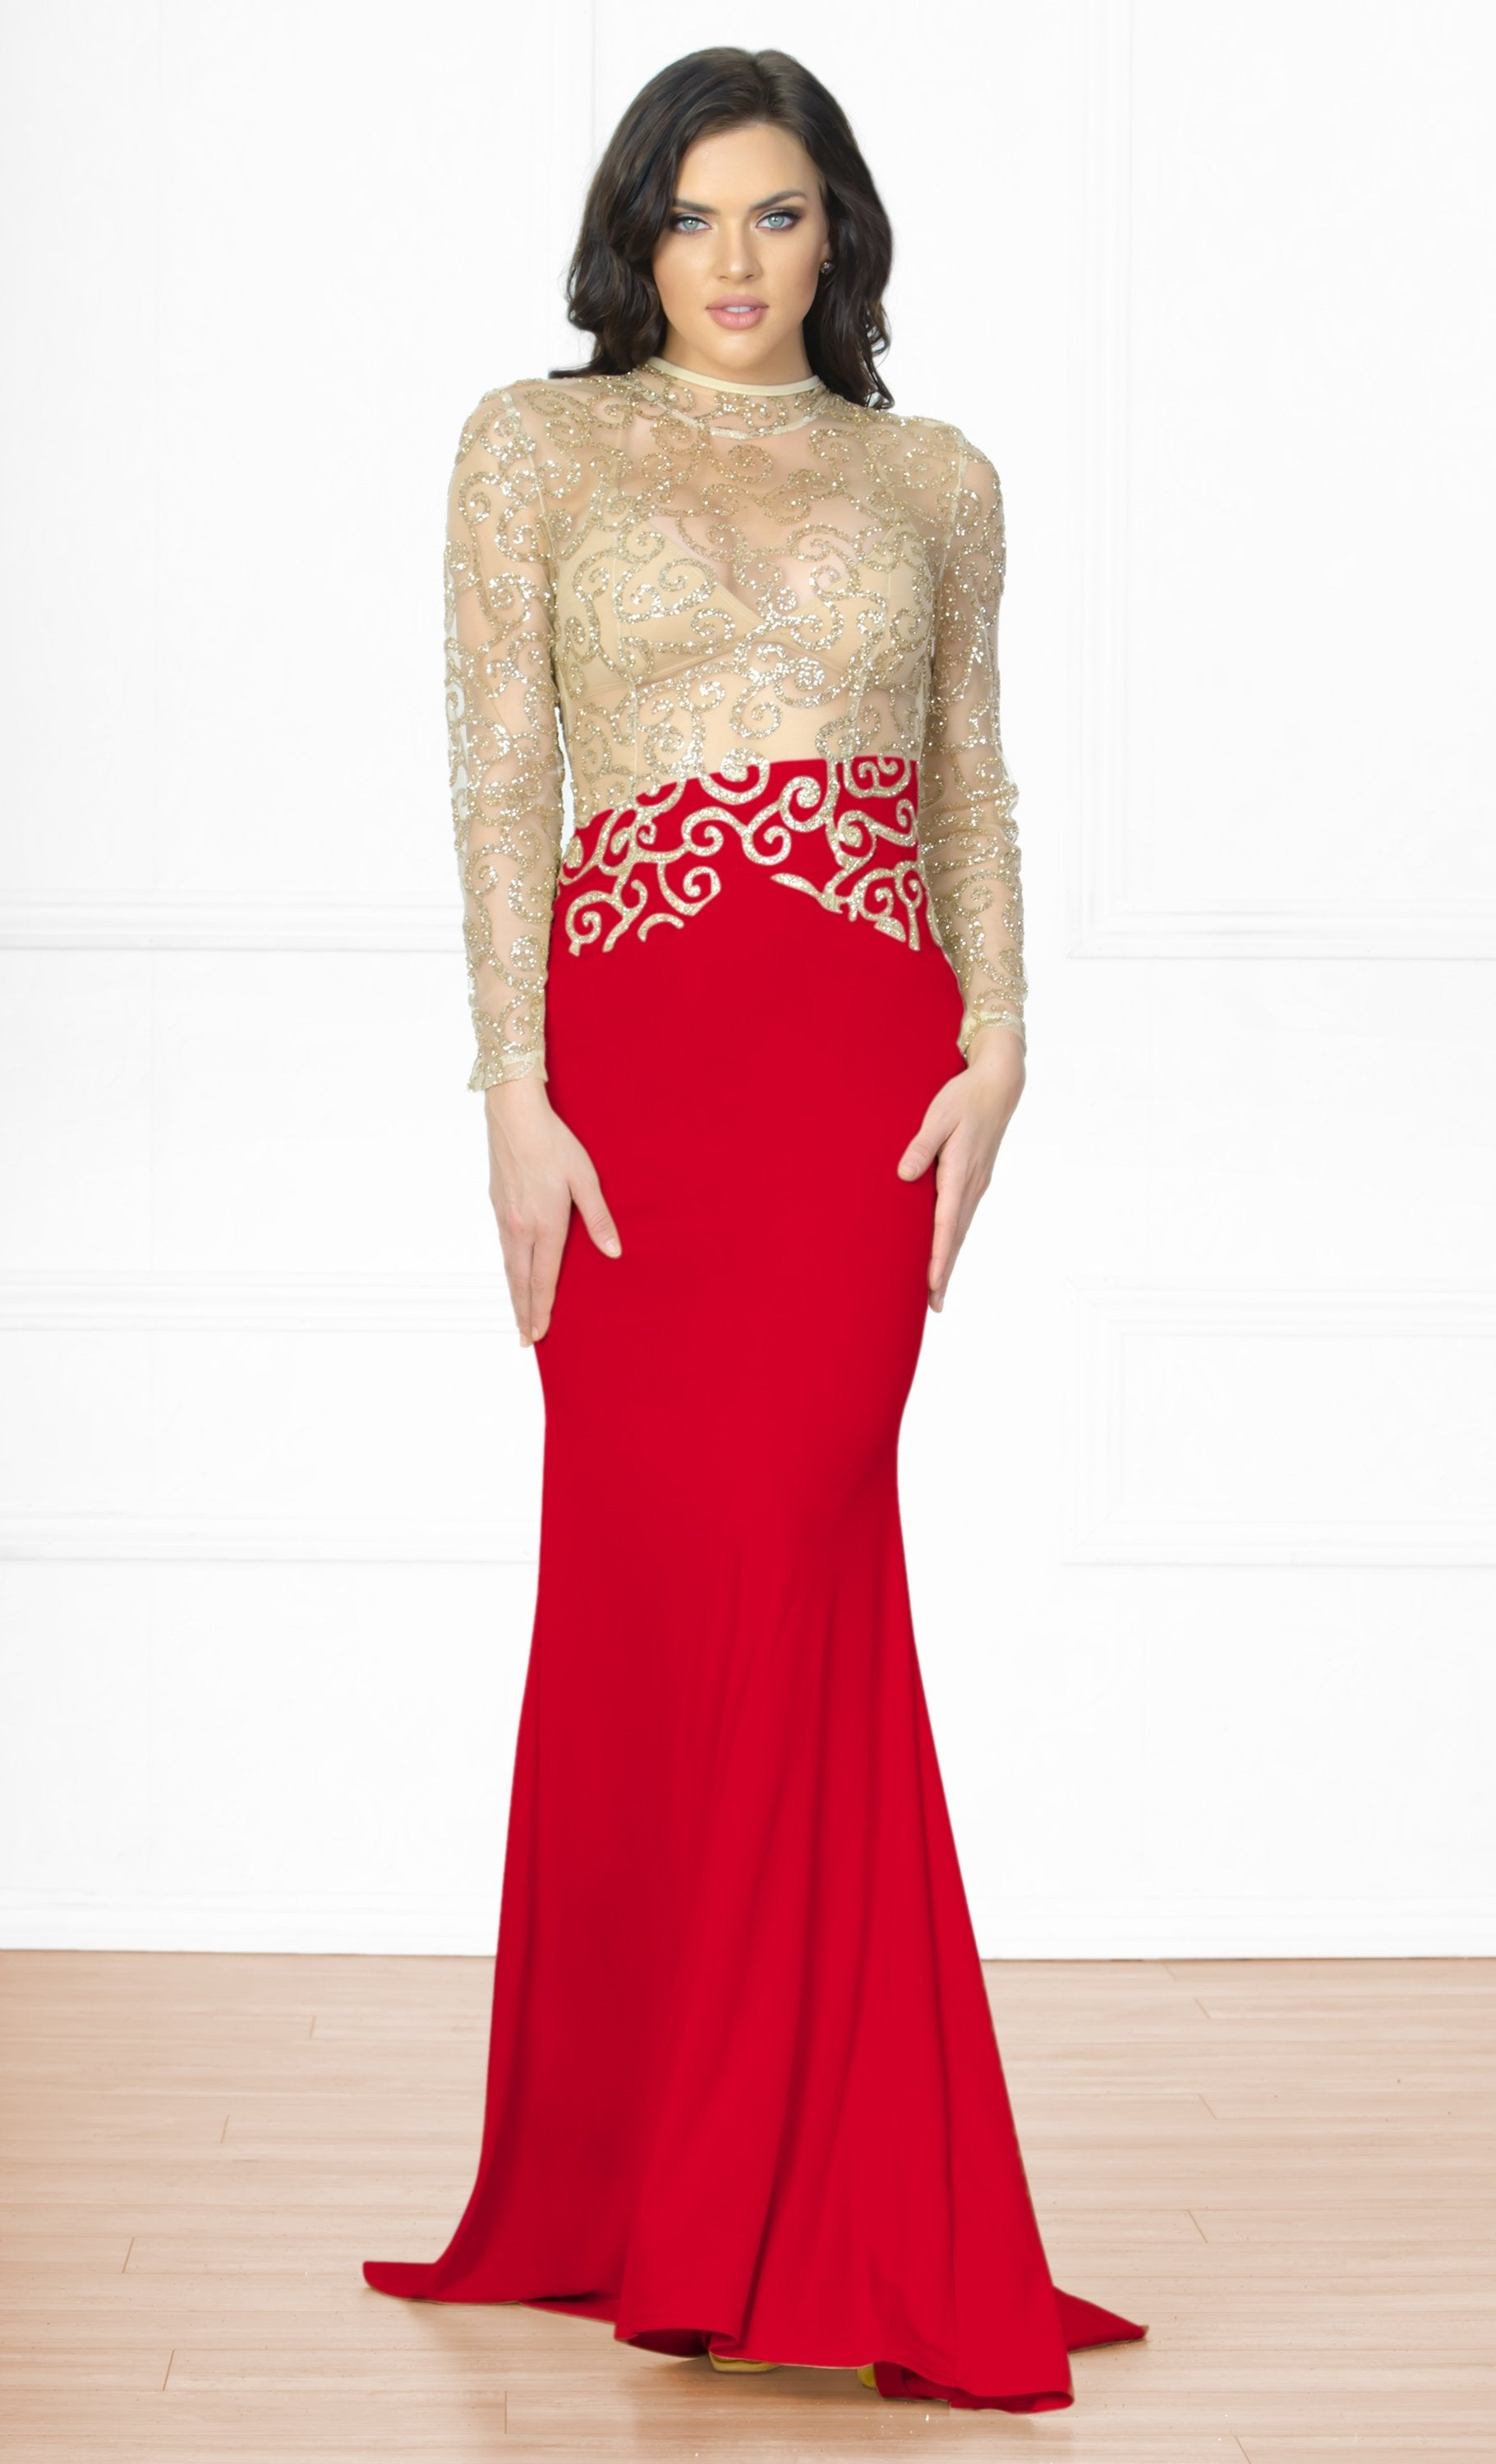 Indie XO Icon Status Red Gold Long Sleeve Sheer Glitter Mock Neck Open Back Maxi Dress Evening Gown